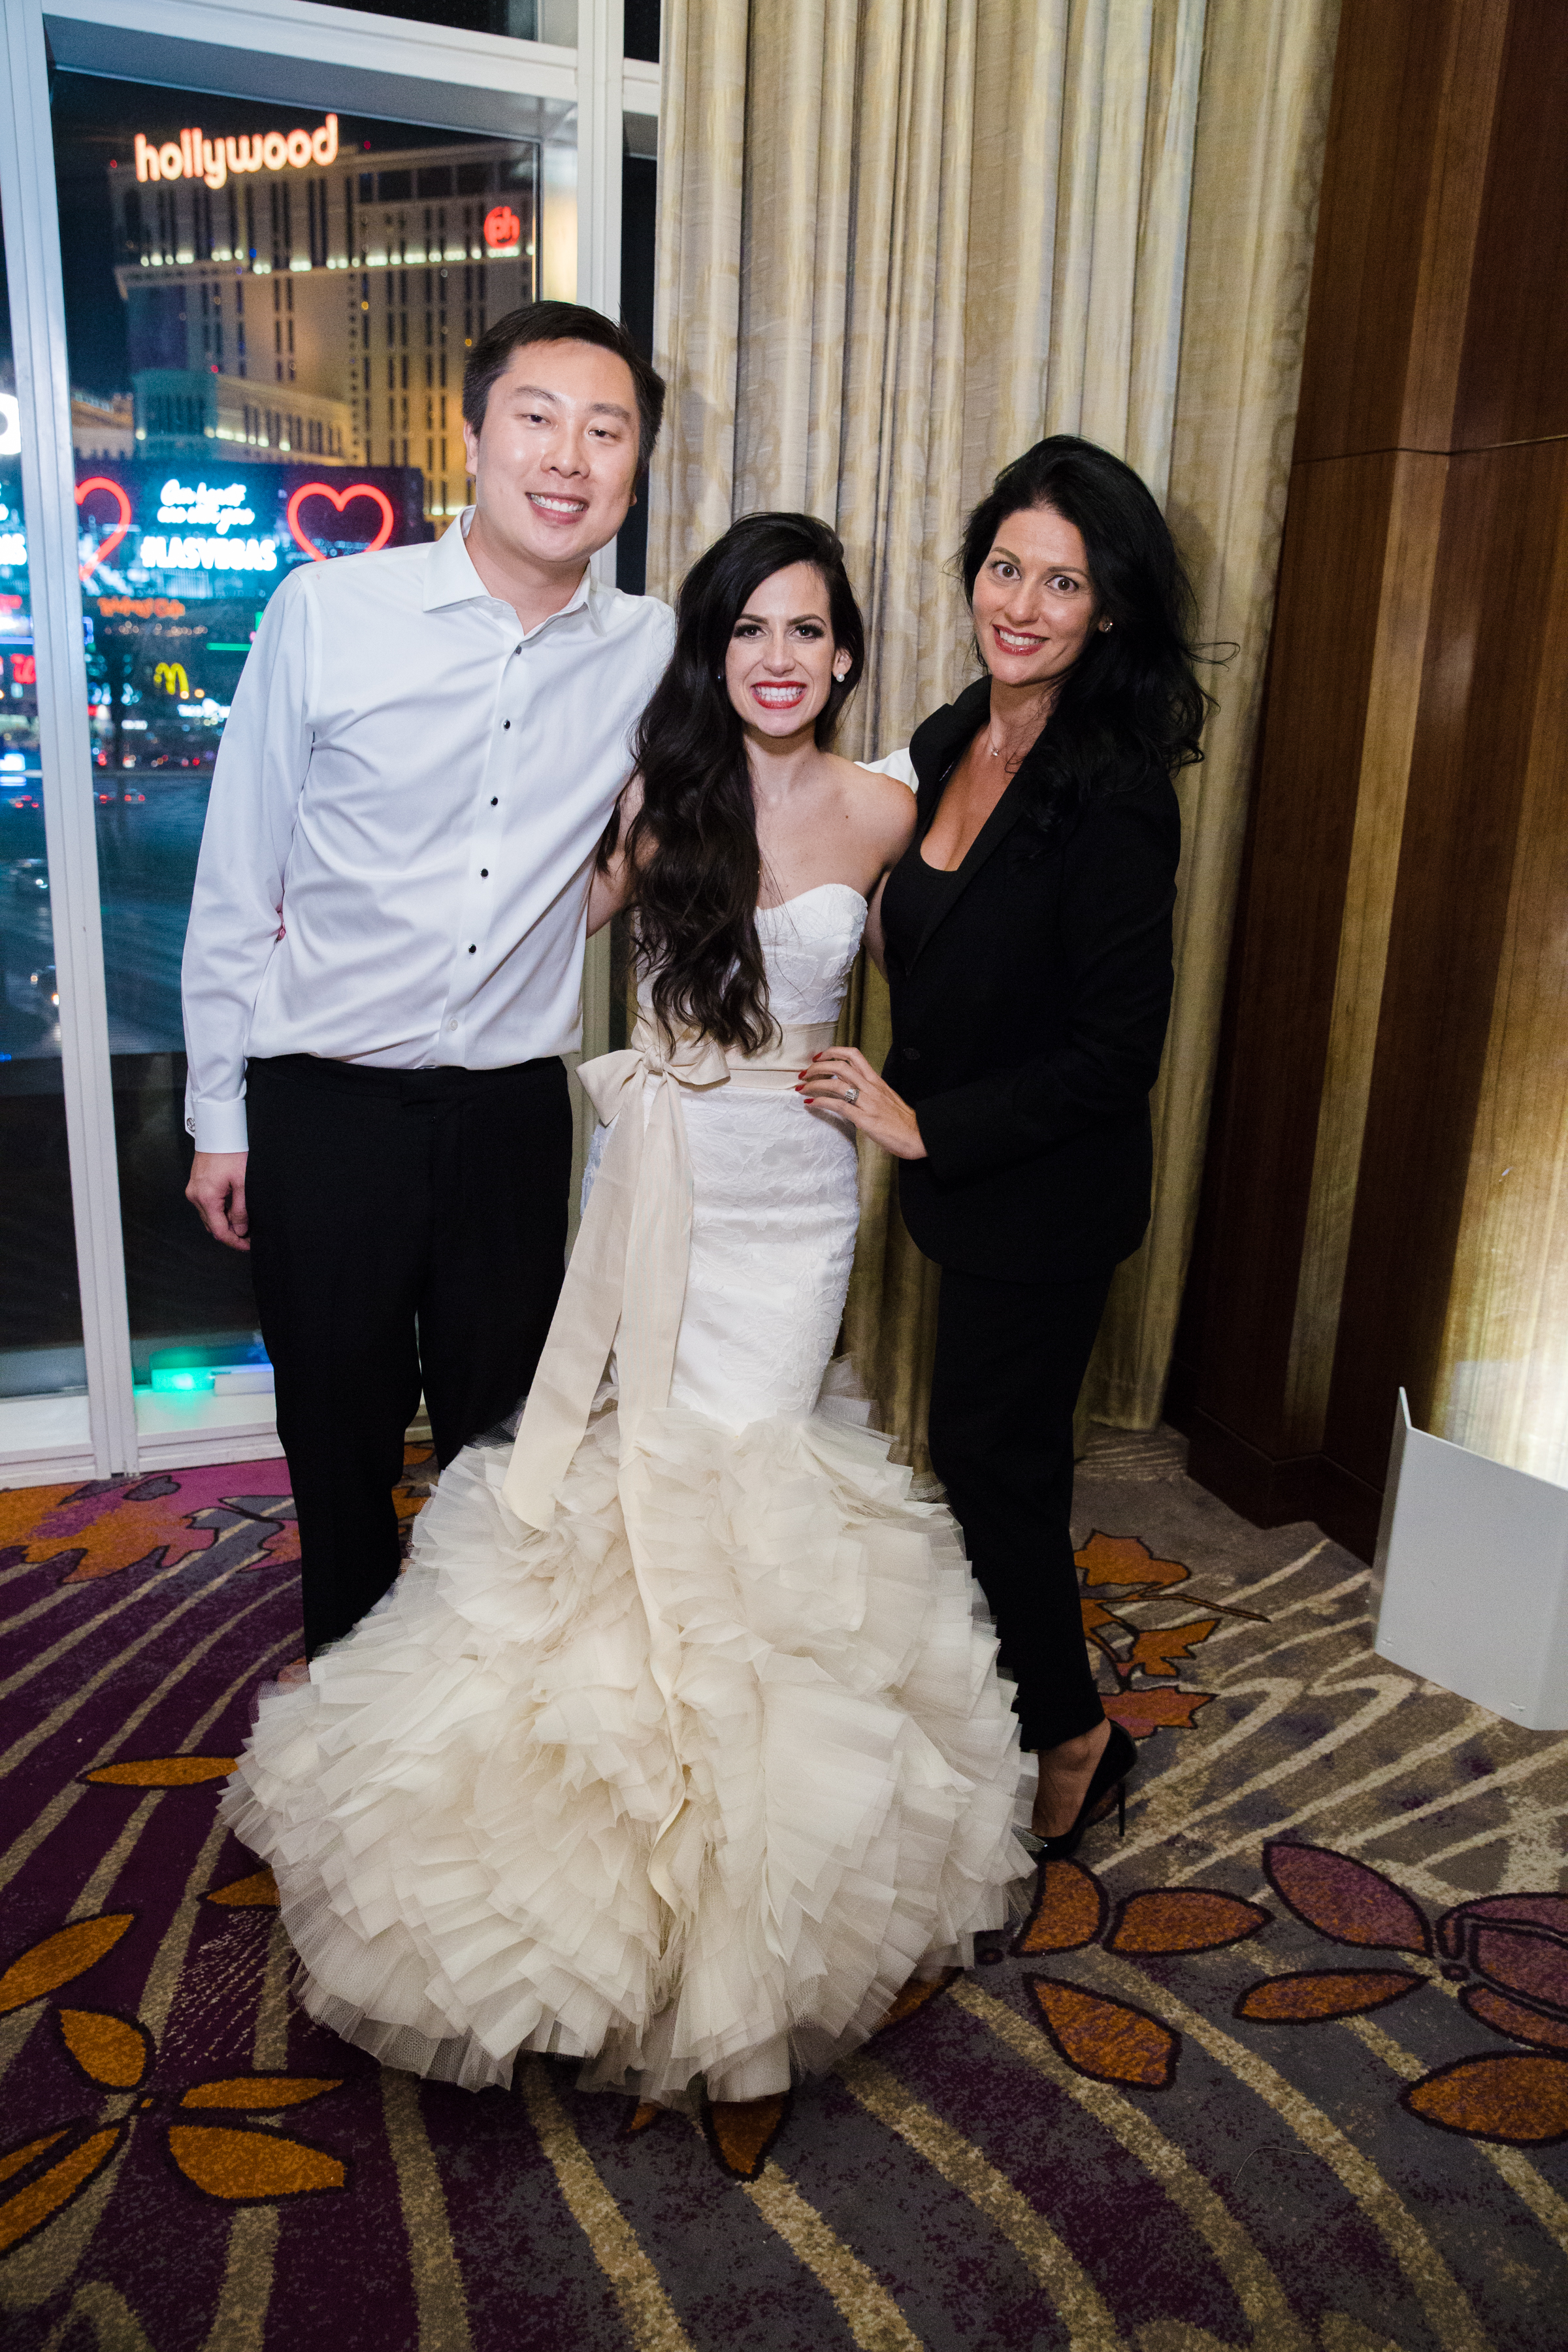 Las Vegas Wedding Planner Andrea Eppolito with bride and Groom.Luxury wedding at the Mandarin Oriental with a color scheme of white, blush, and pops of wine red produced by Las Vegas Wedding Planner Andrea Eppolito with photos by Stephen Salazar Photography.